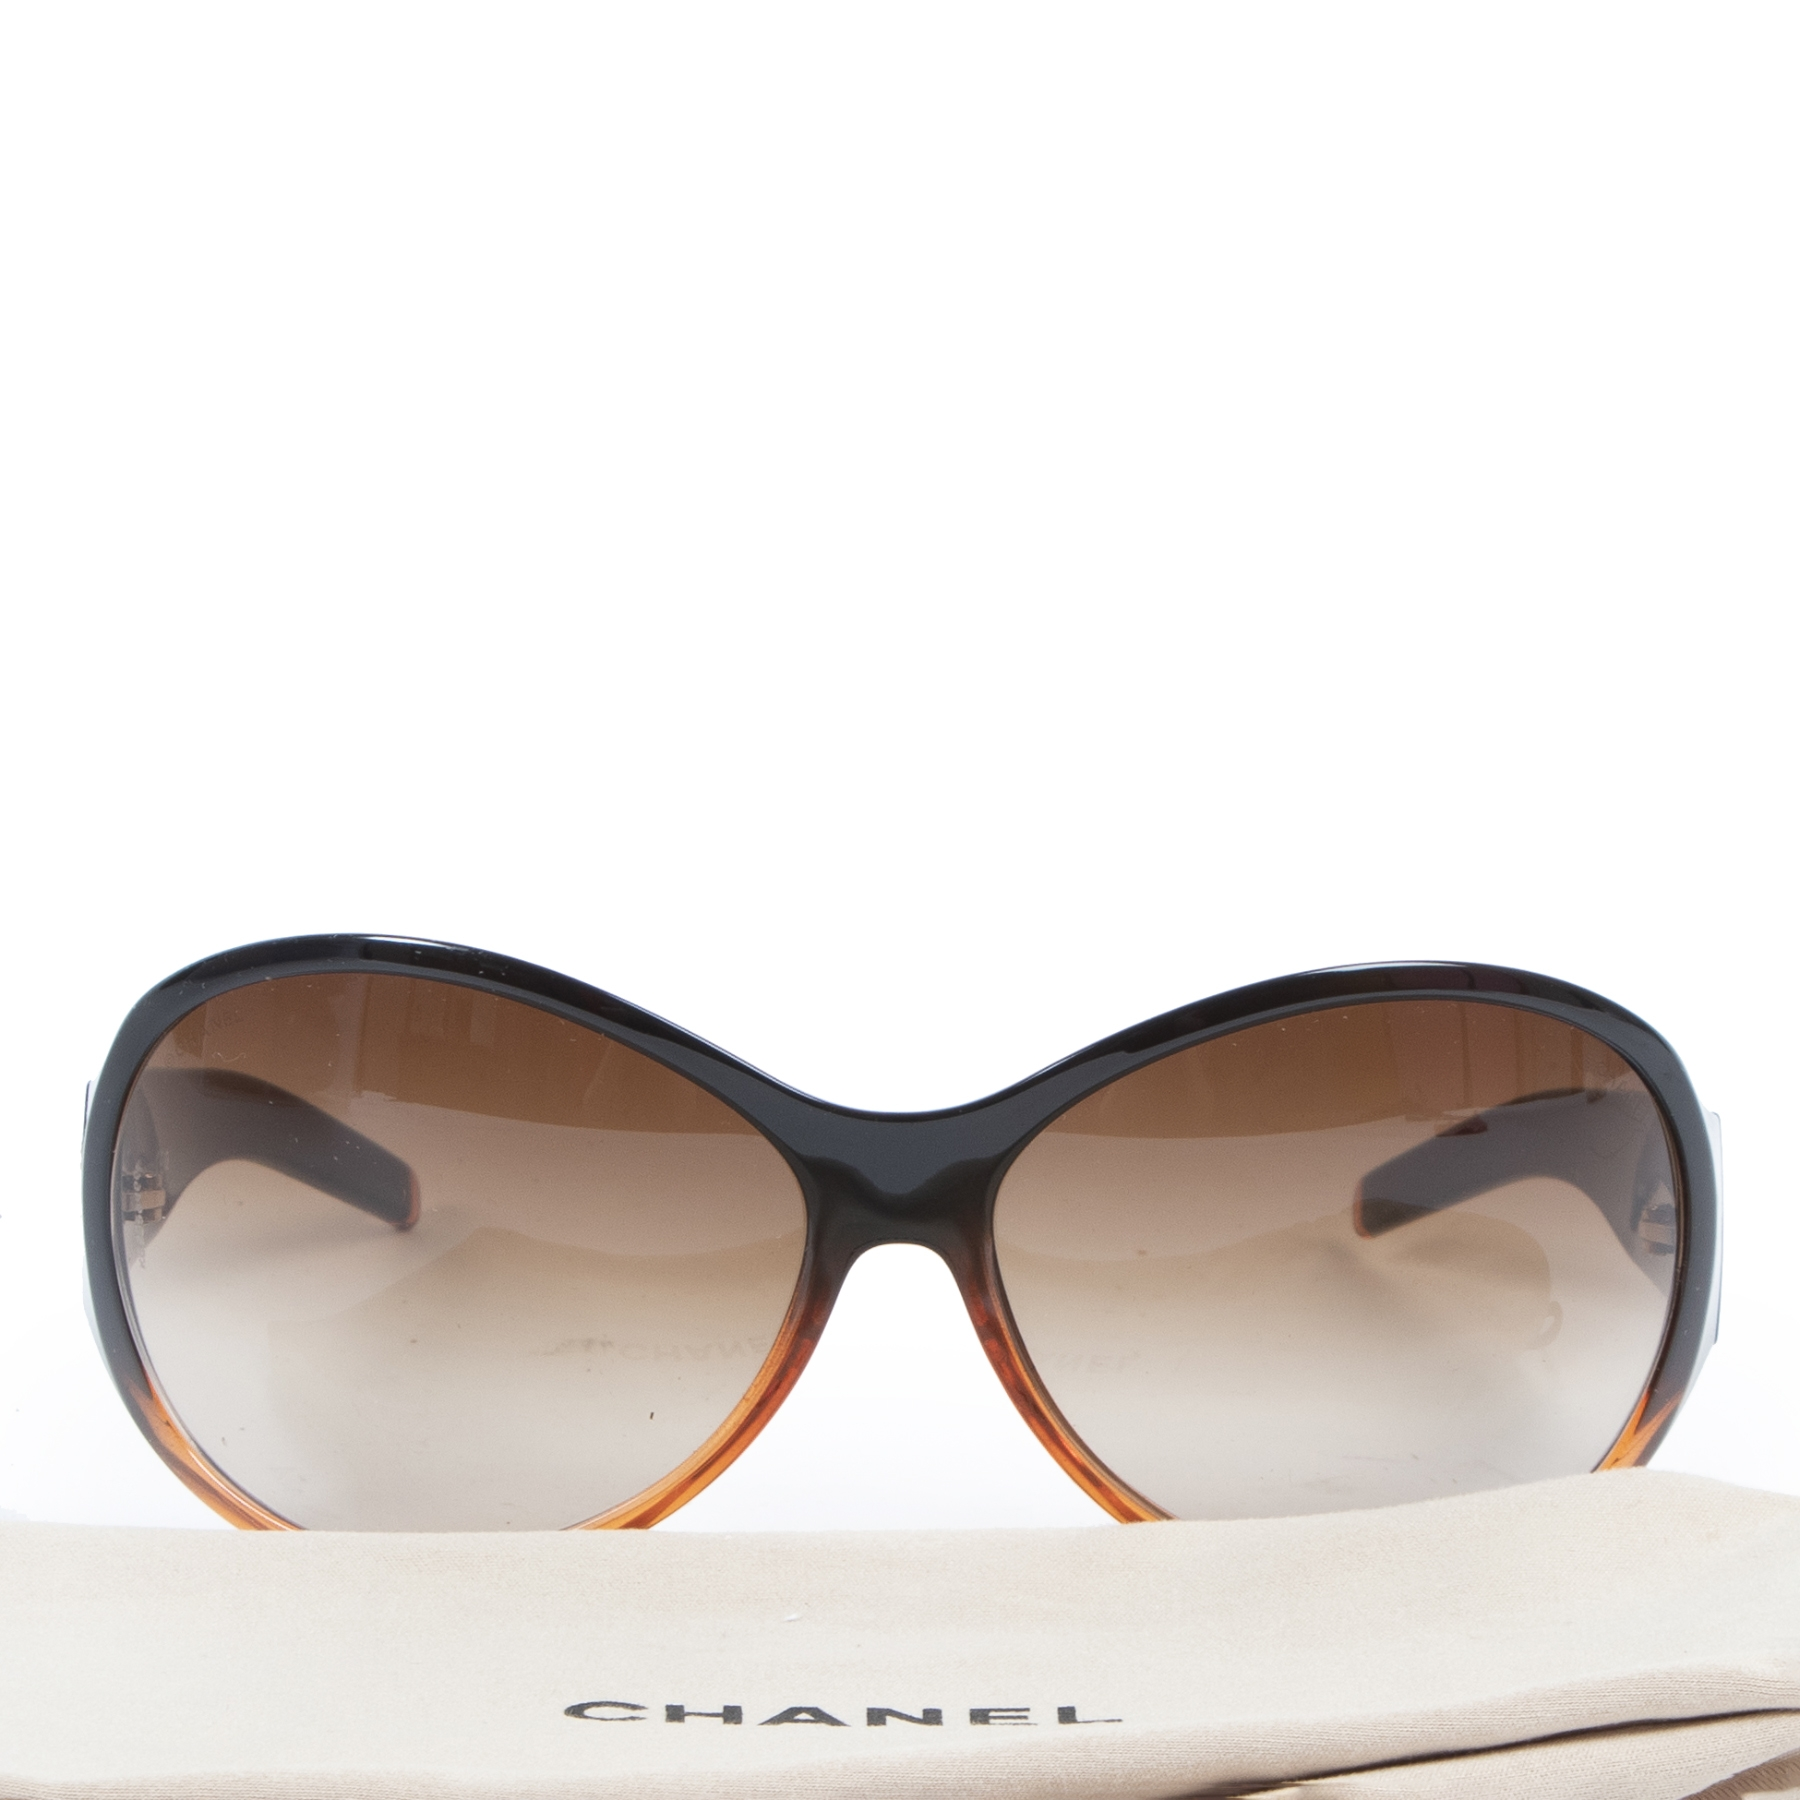 Authentic secondhand Chanel Brown Sunglasses designer accessories fashion luxury vintage webshop safe secure online shopping